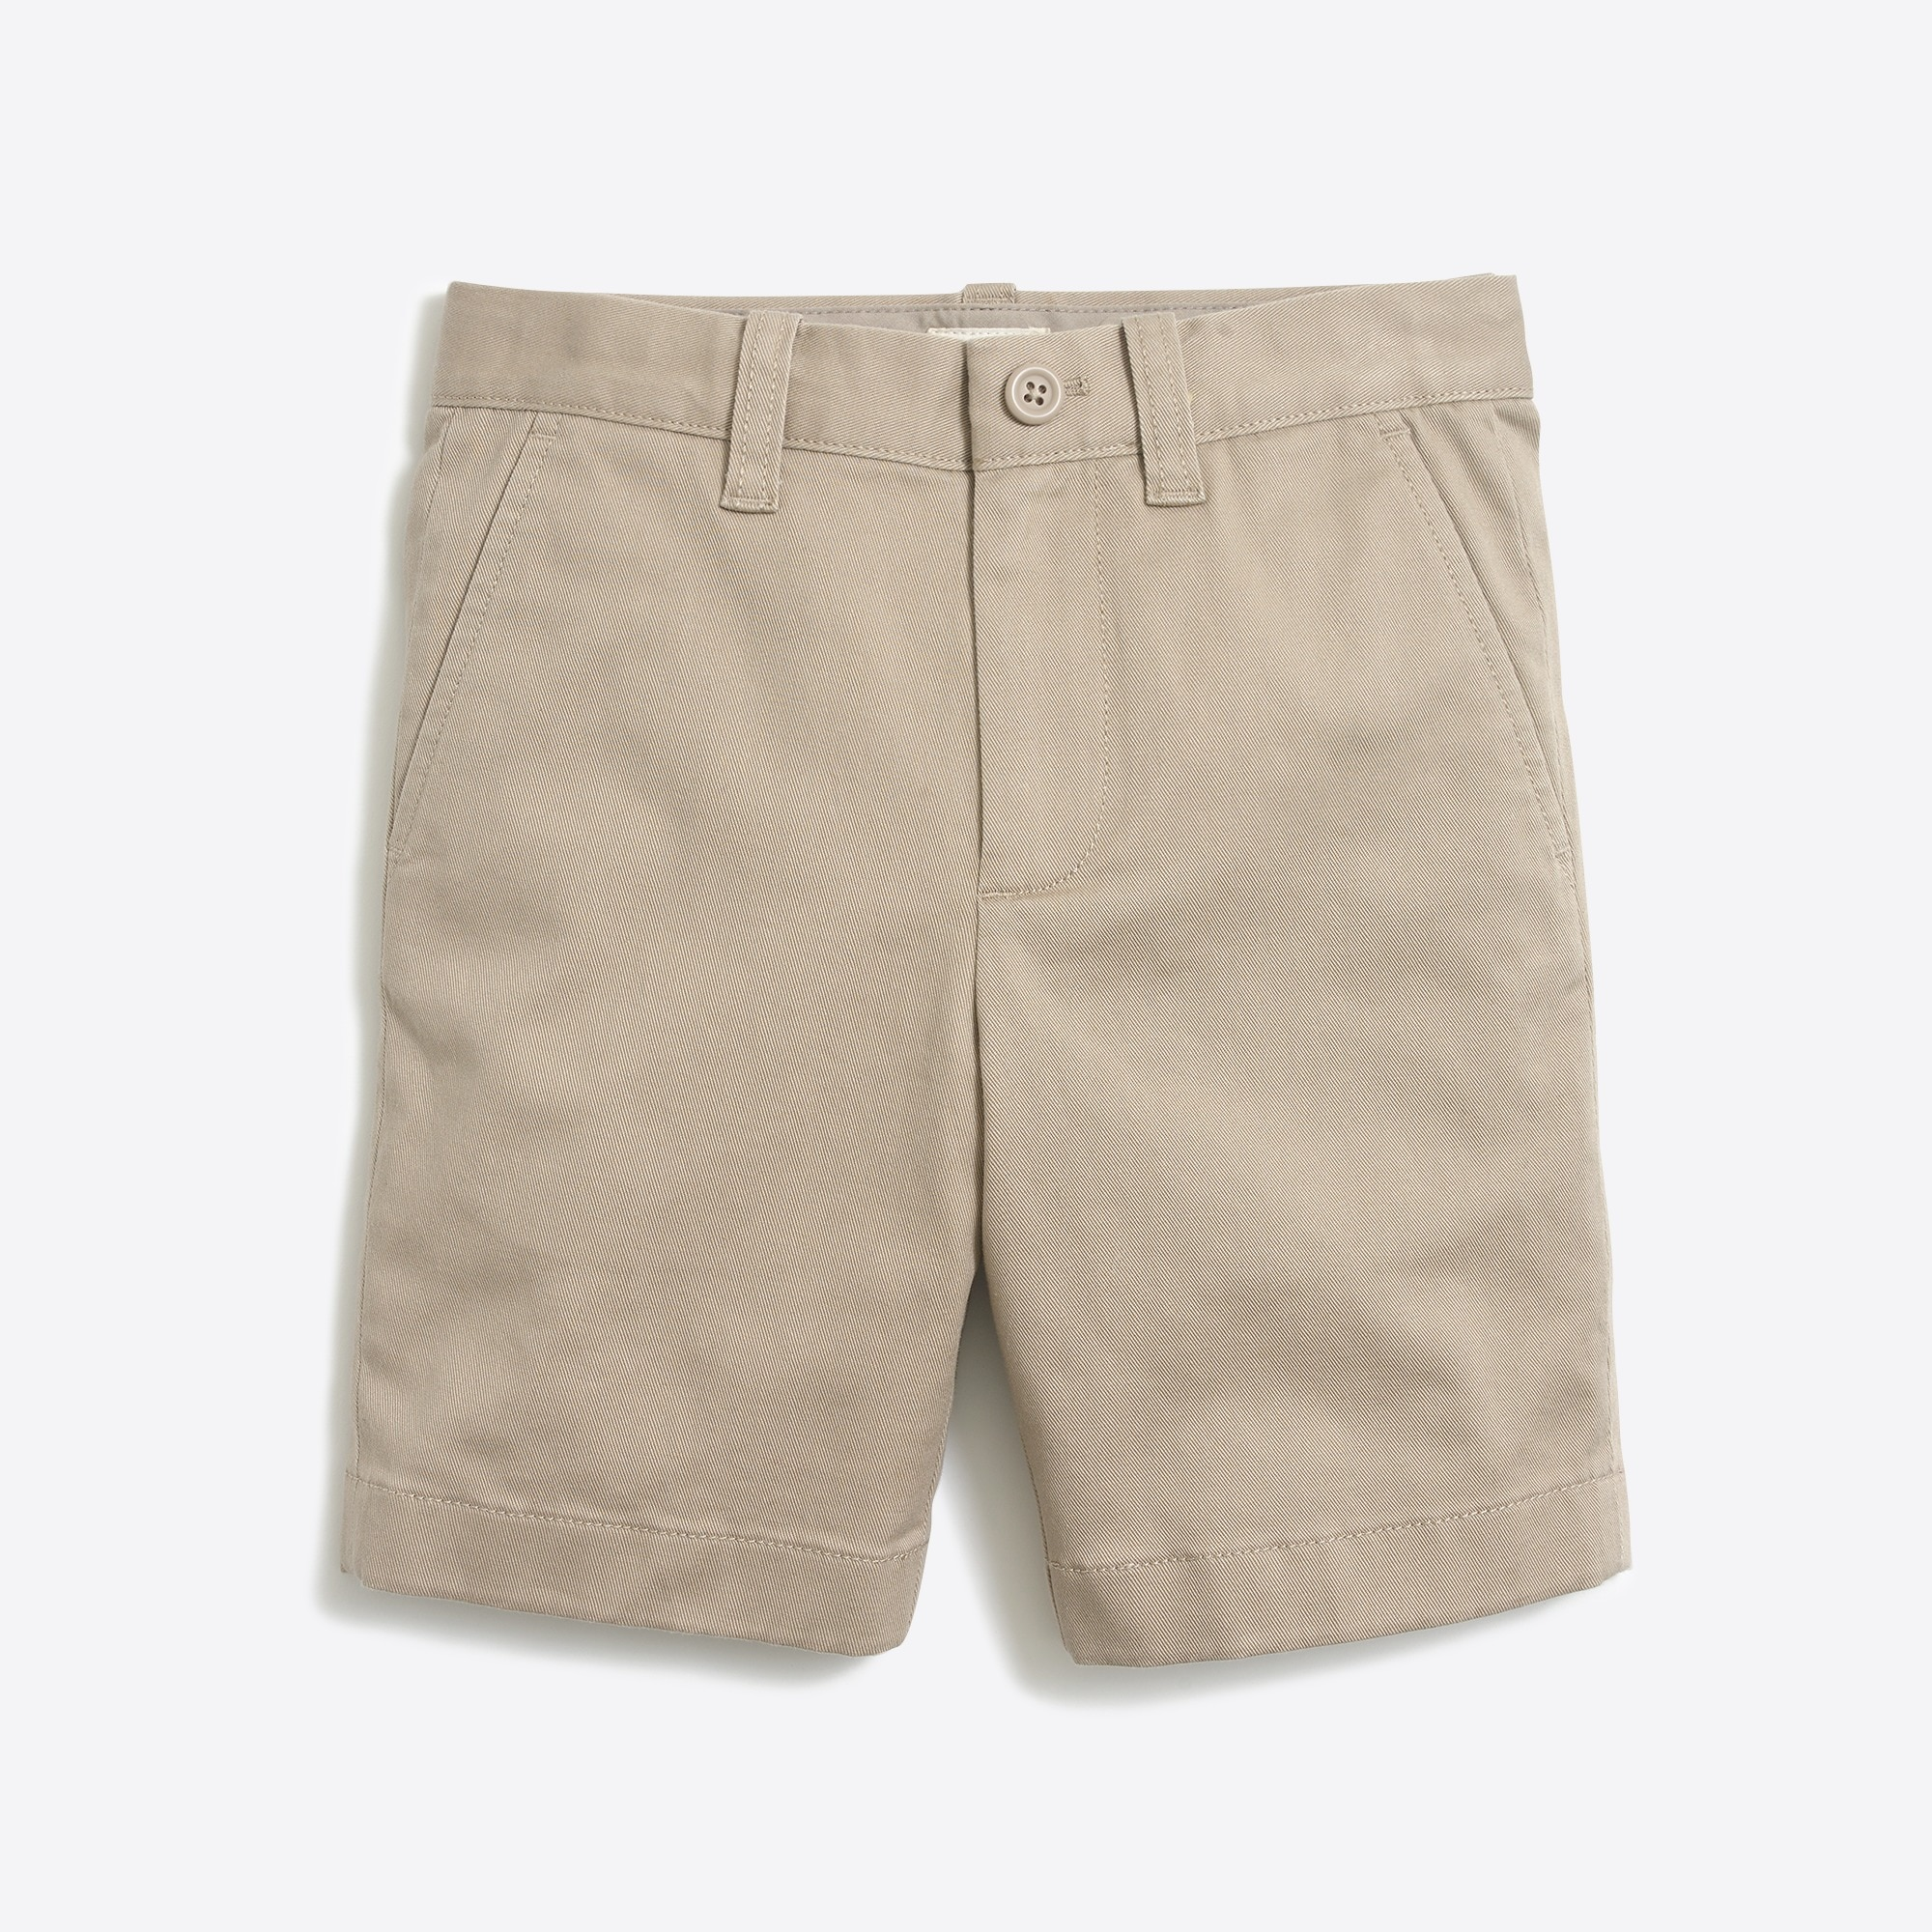 Boys' Gramercy short in flex chino factoryboys the camp shop c